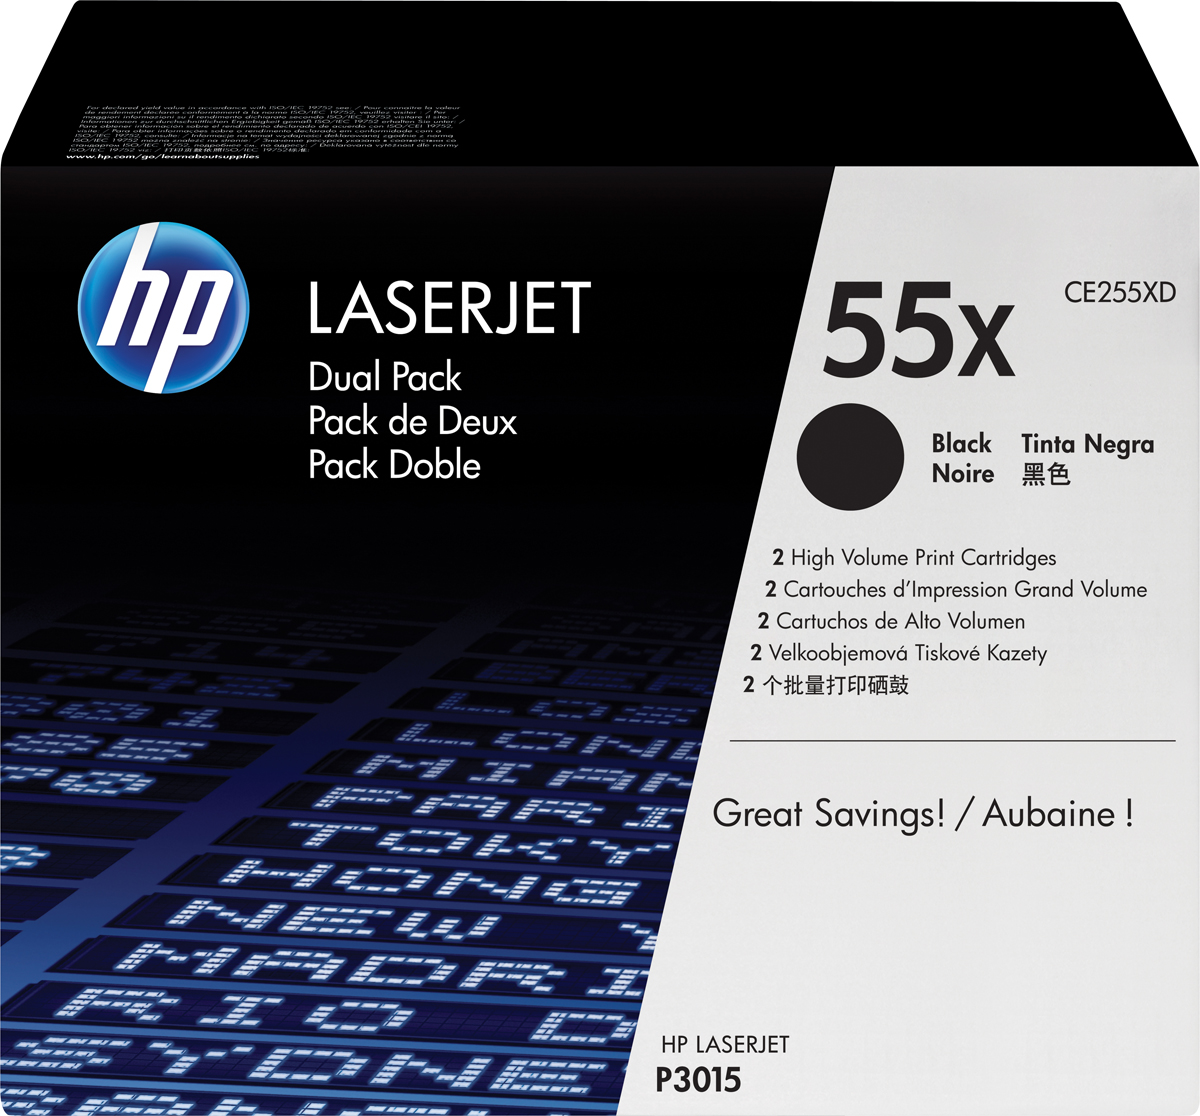 HP CE255XD, Black тонер-картридж для LaserJet Enterprise P3015/P3015d/P3015dn/P3015x manage enterprise knowledge systematically